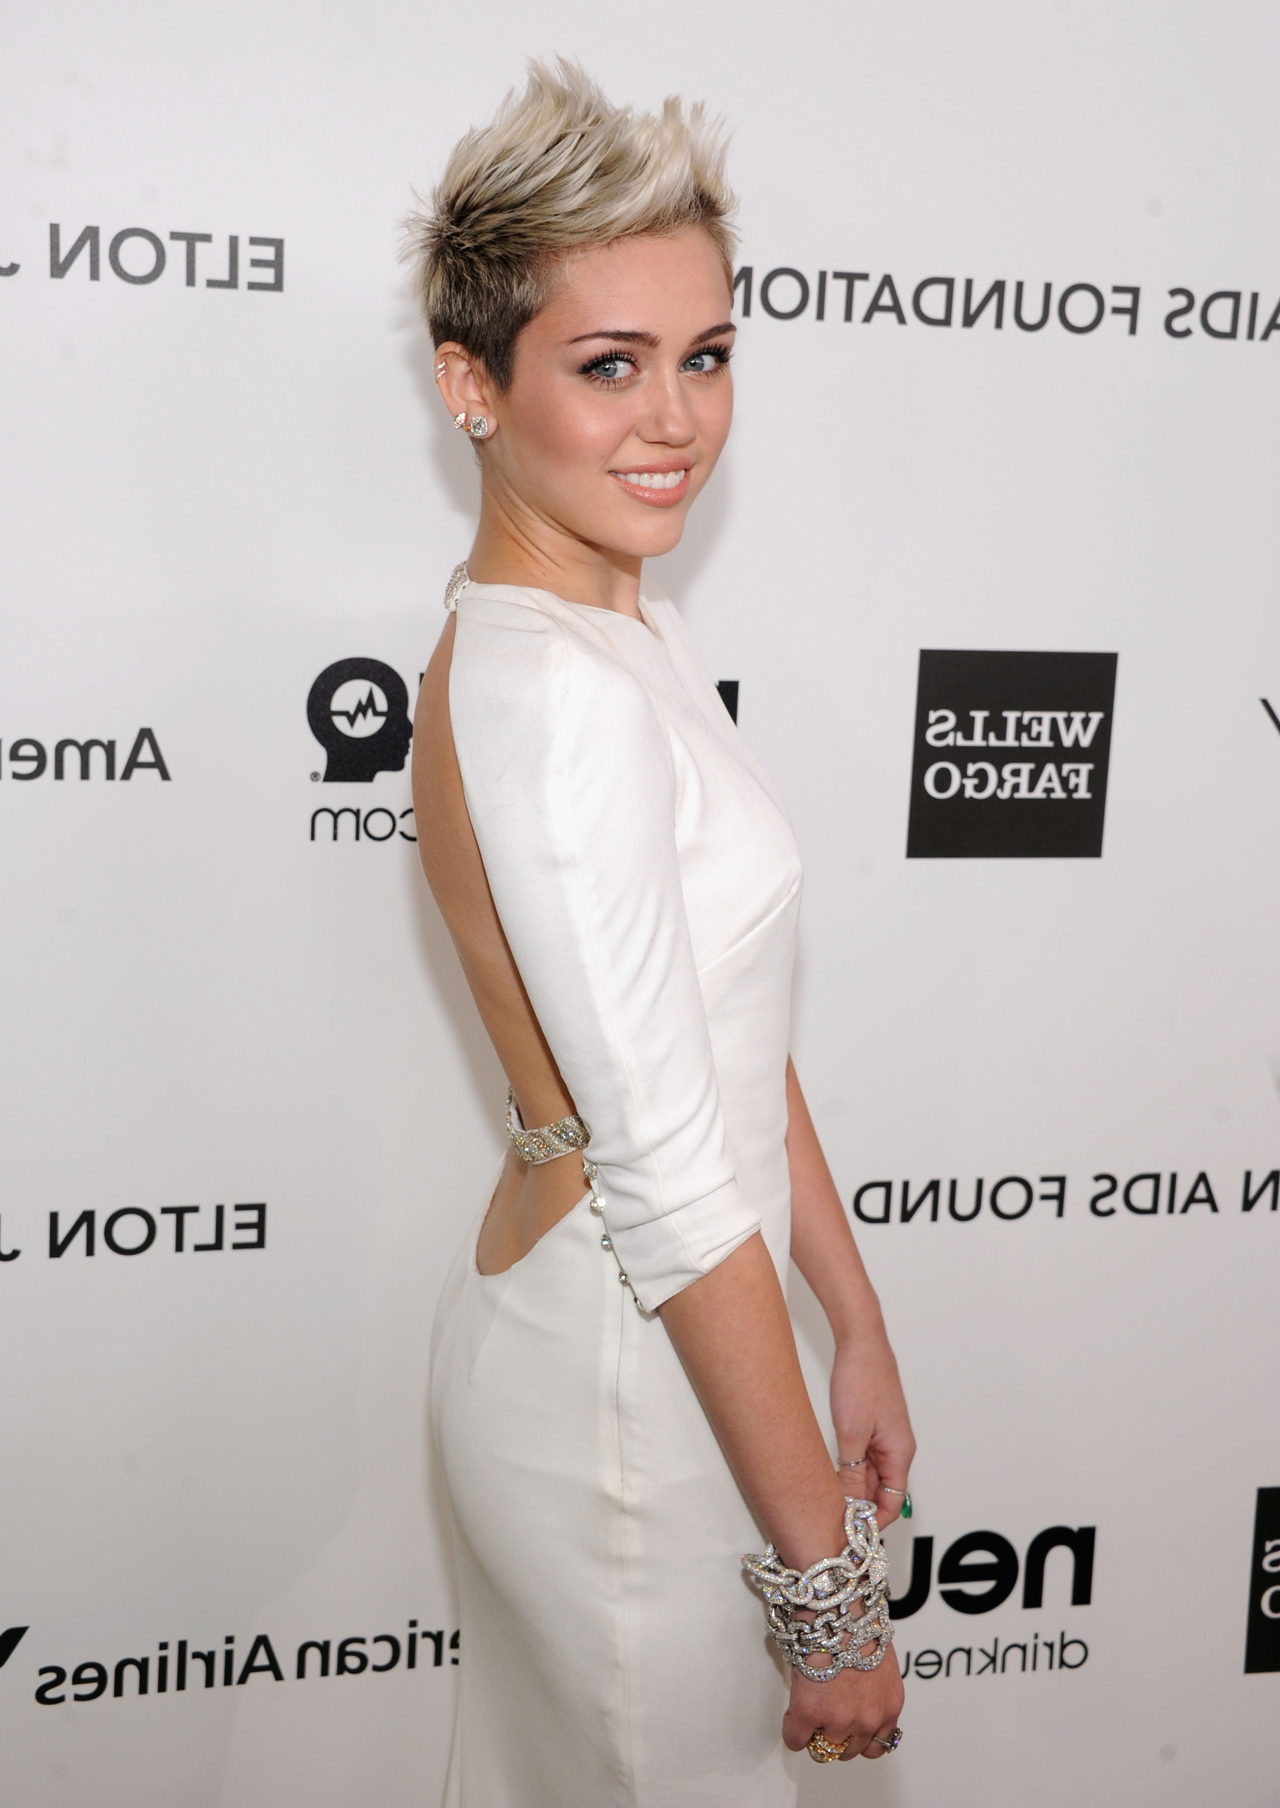 Miley Cyrus Is Over Her Short Hair | Obsev Inside Miley Cyrus Short Haircuts (View 15 of 25)